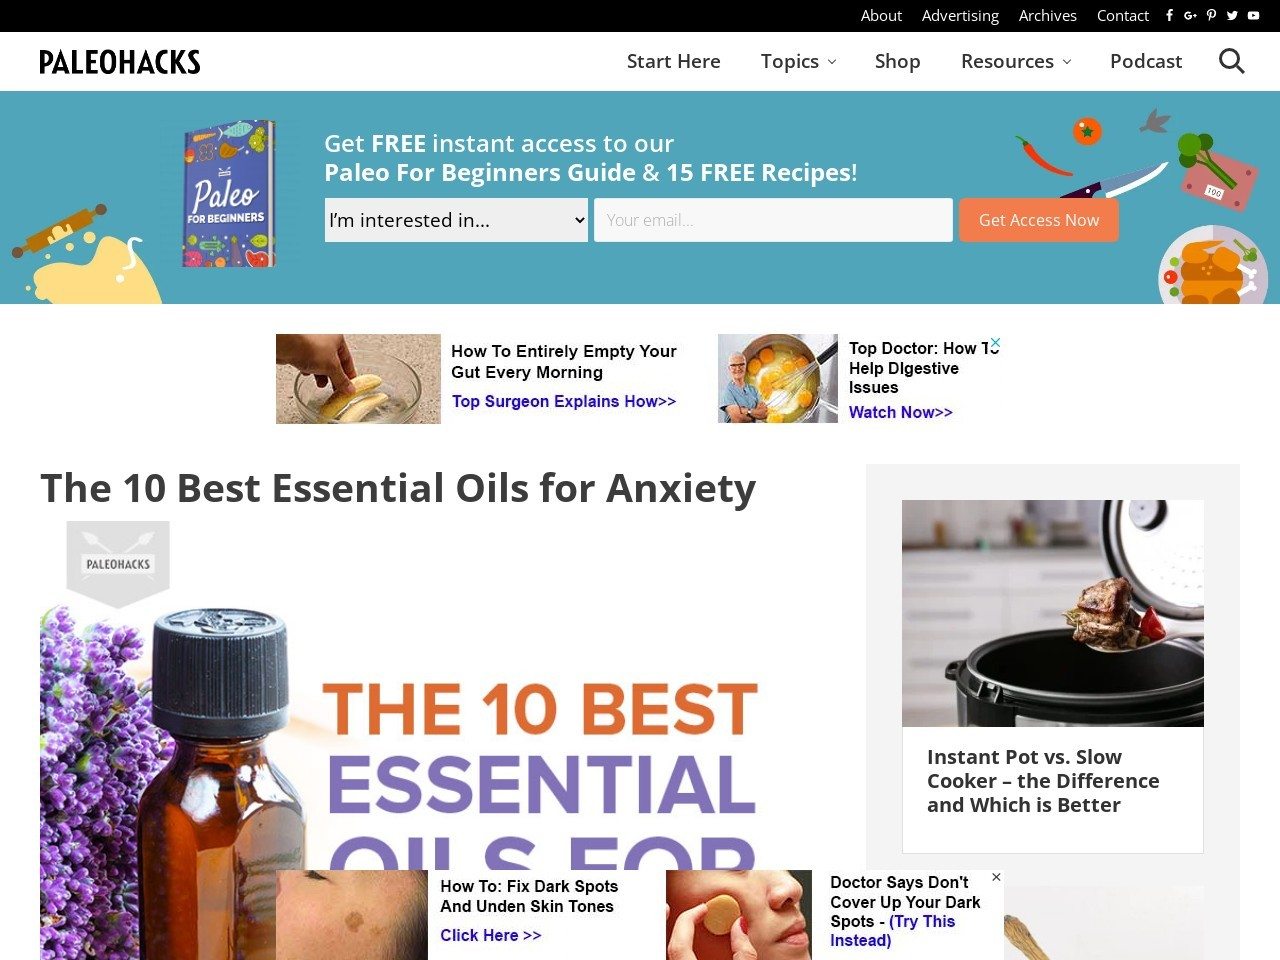 The 10 Best Essential Oils for Anxiety